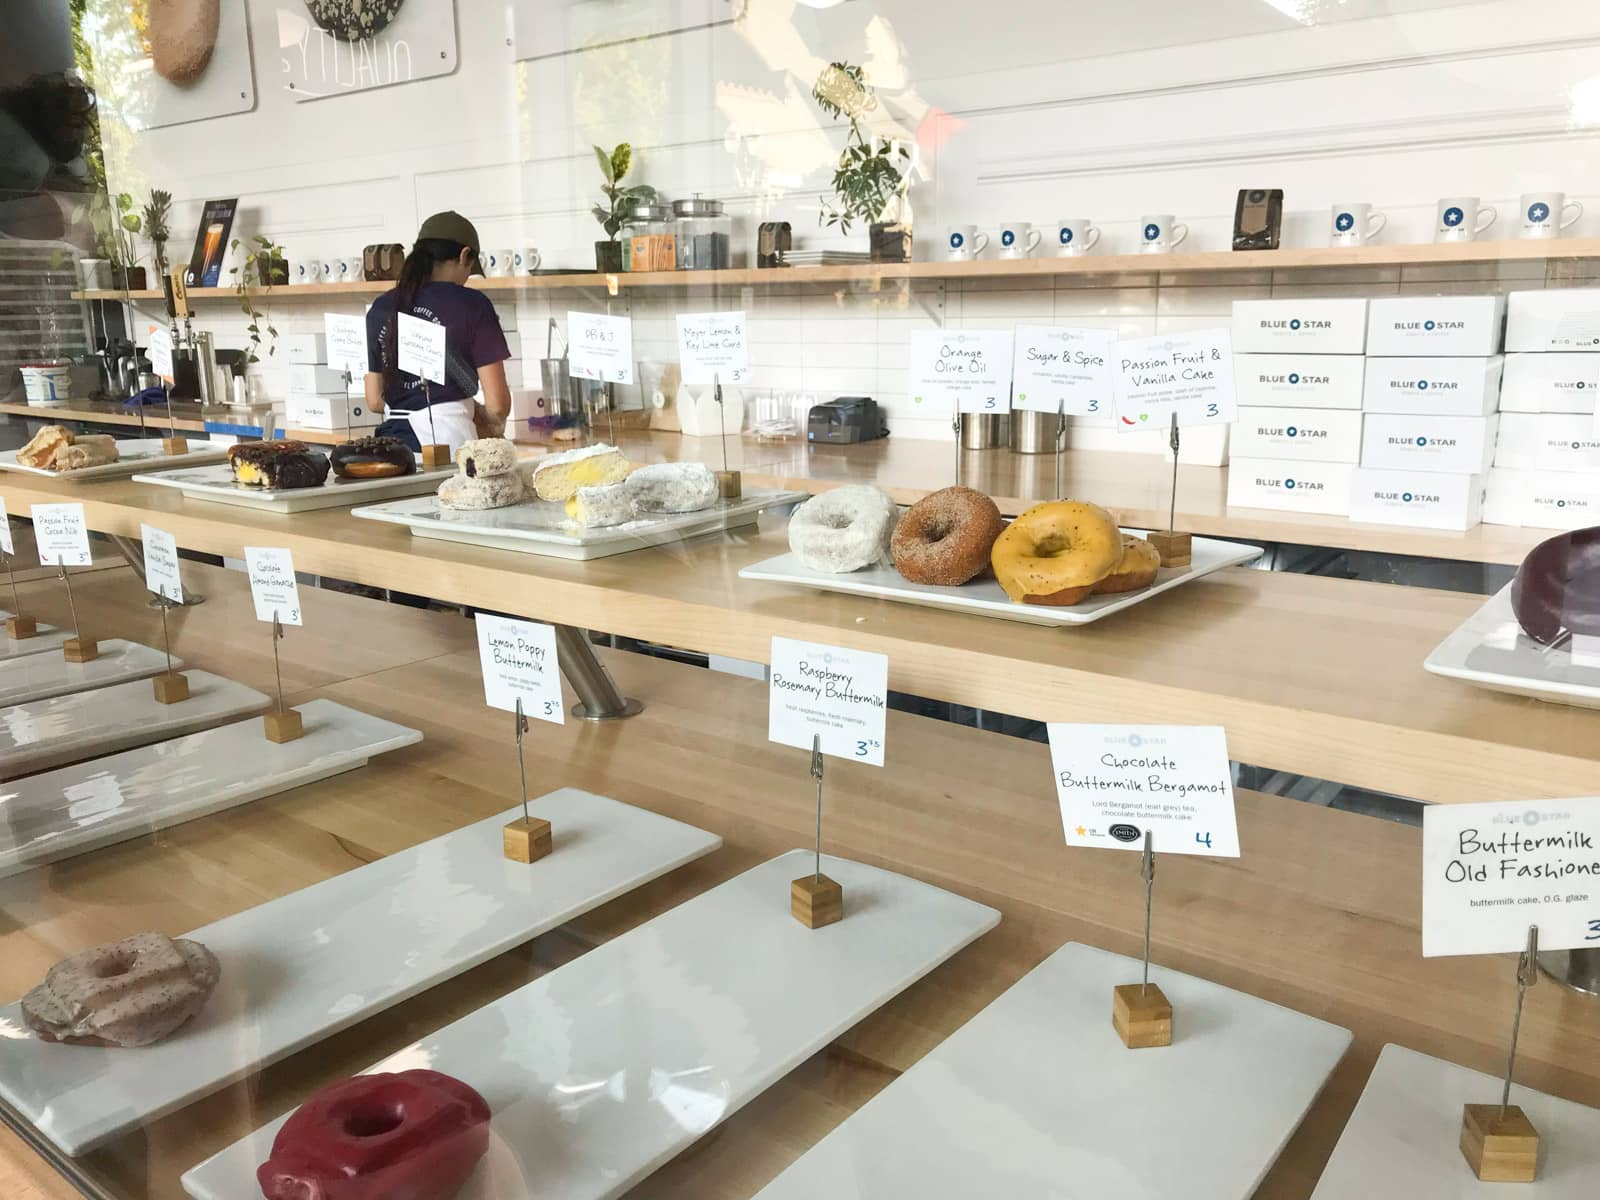 The inside of a doughnut shop, with many gourmet doughnuts on display on long white trays.